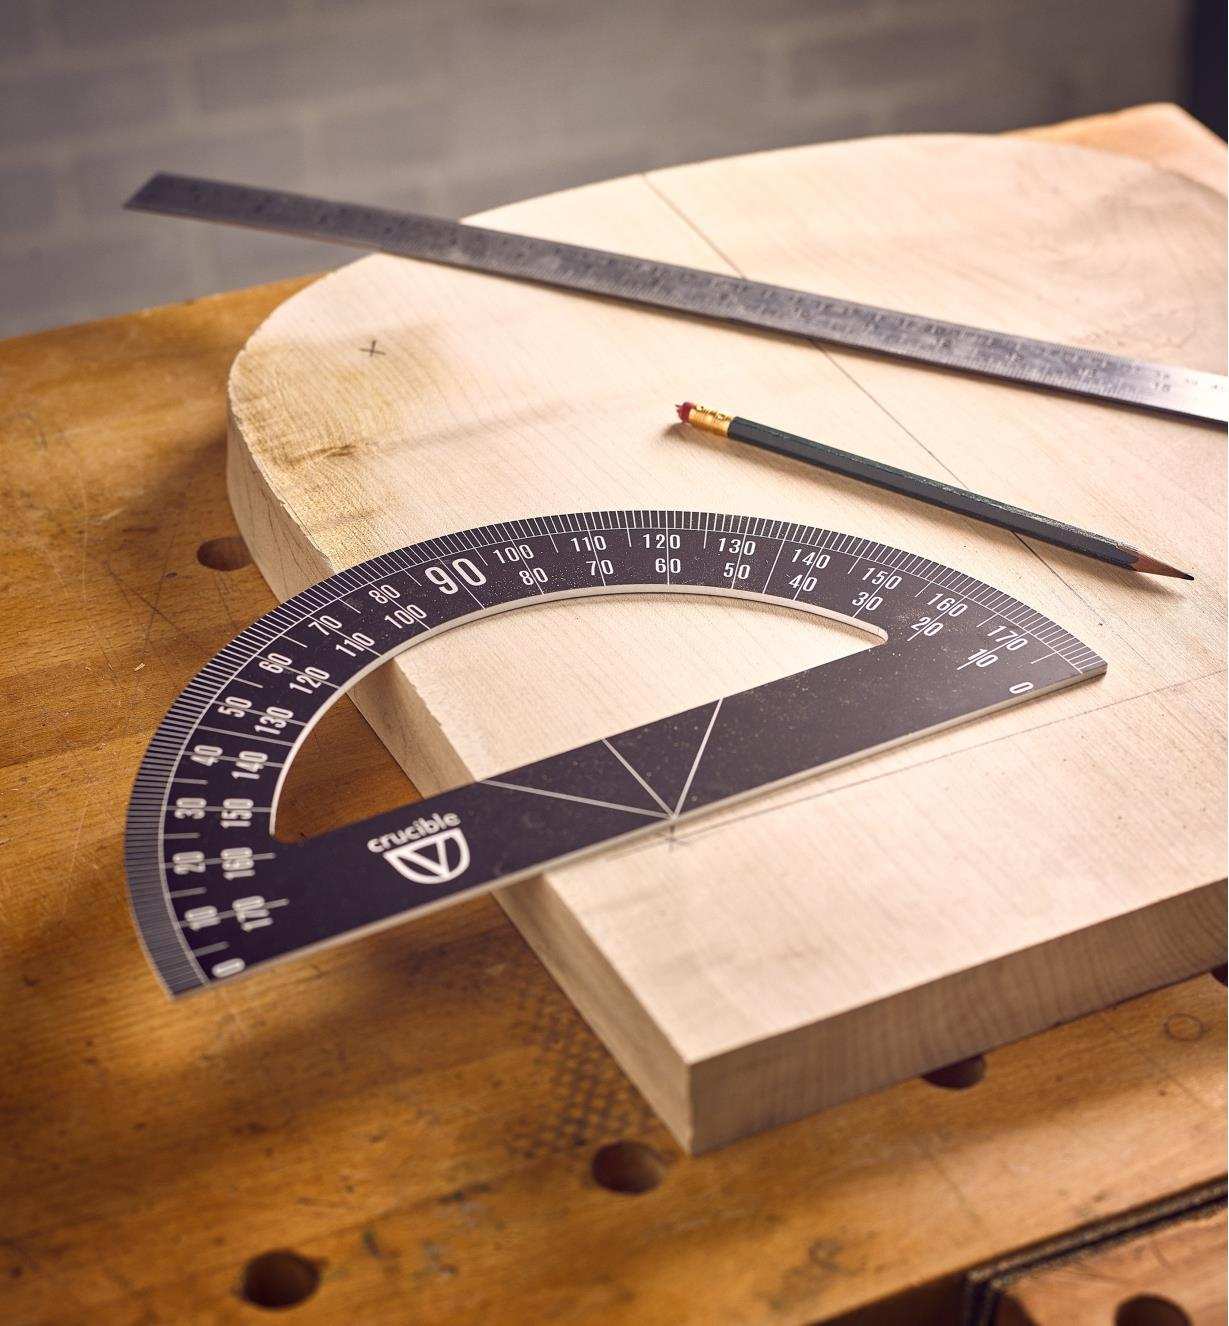 The Crucible protractor and drawing tools with a workpiece